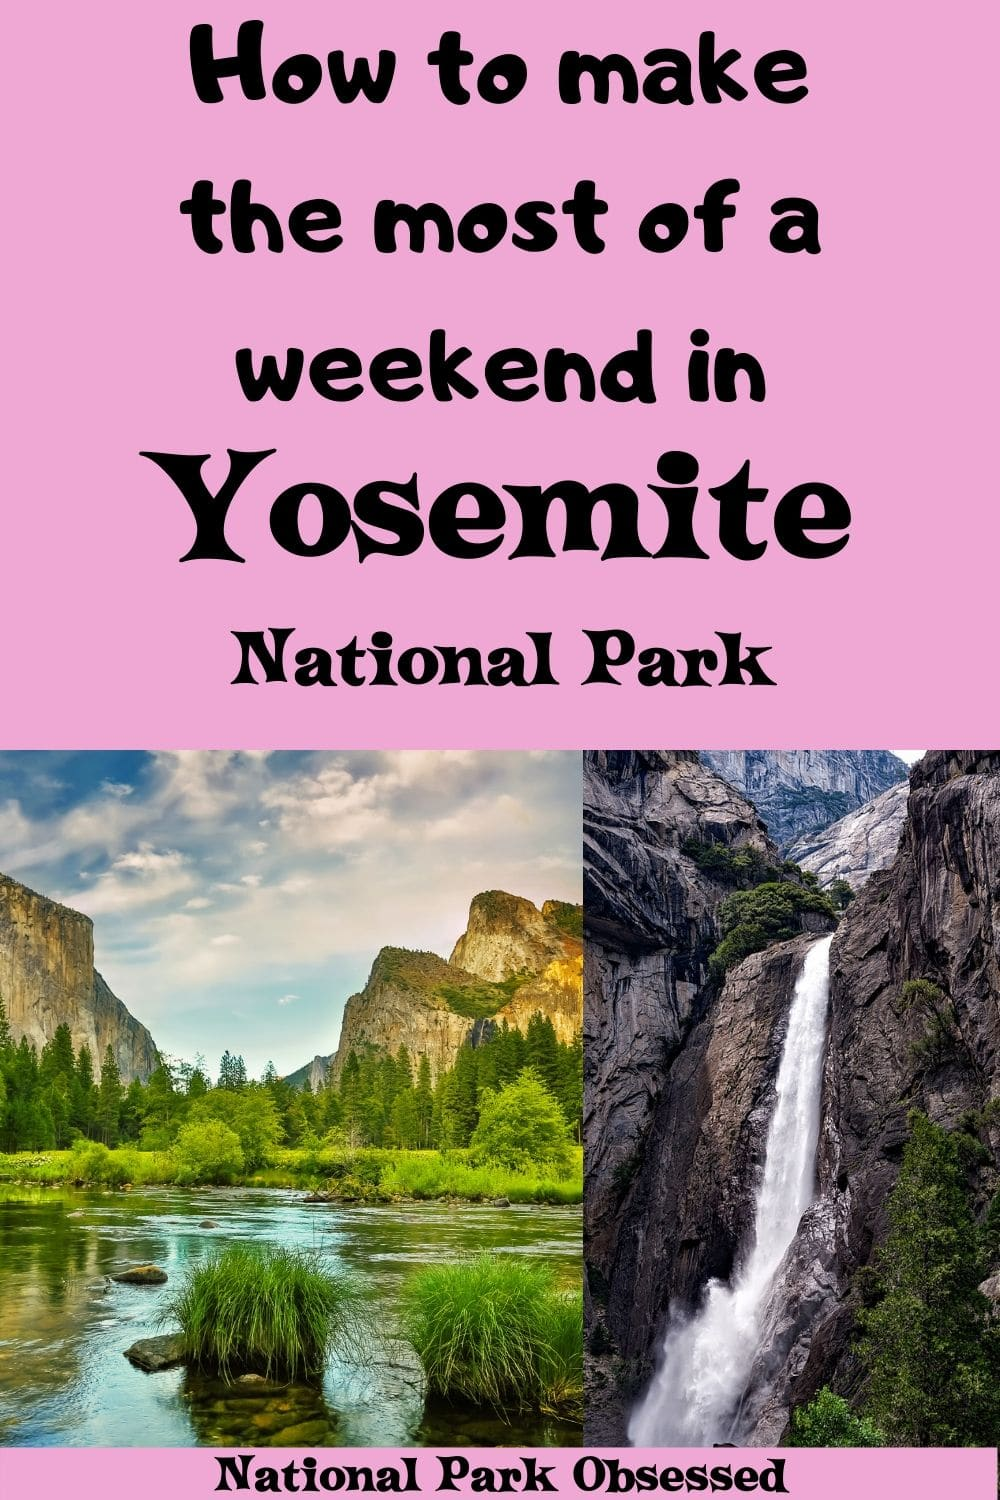 Looking to spend two days in Yosemite National Park? Here is everything you need to know to make the most of your weekend in Yosemite National Park. #yosemite #yosemitenps #nationalparks #nationalpark #yosemitevalley #califorina Yosemite national park vacation. Yosemite national park | Yosemite national park vacation | Yosemite national park photography | Yosemite national park itinerary | Yosemite hikes | Yosemite itinerary